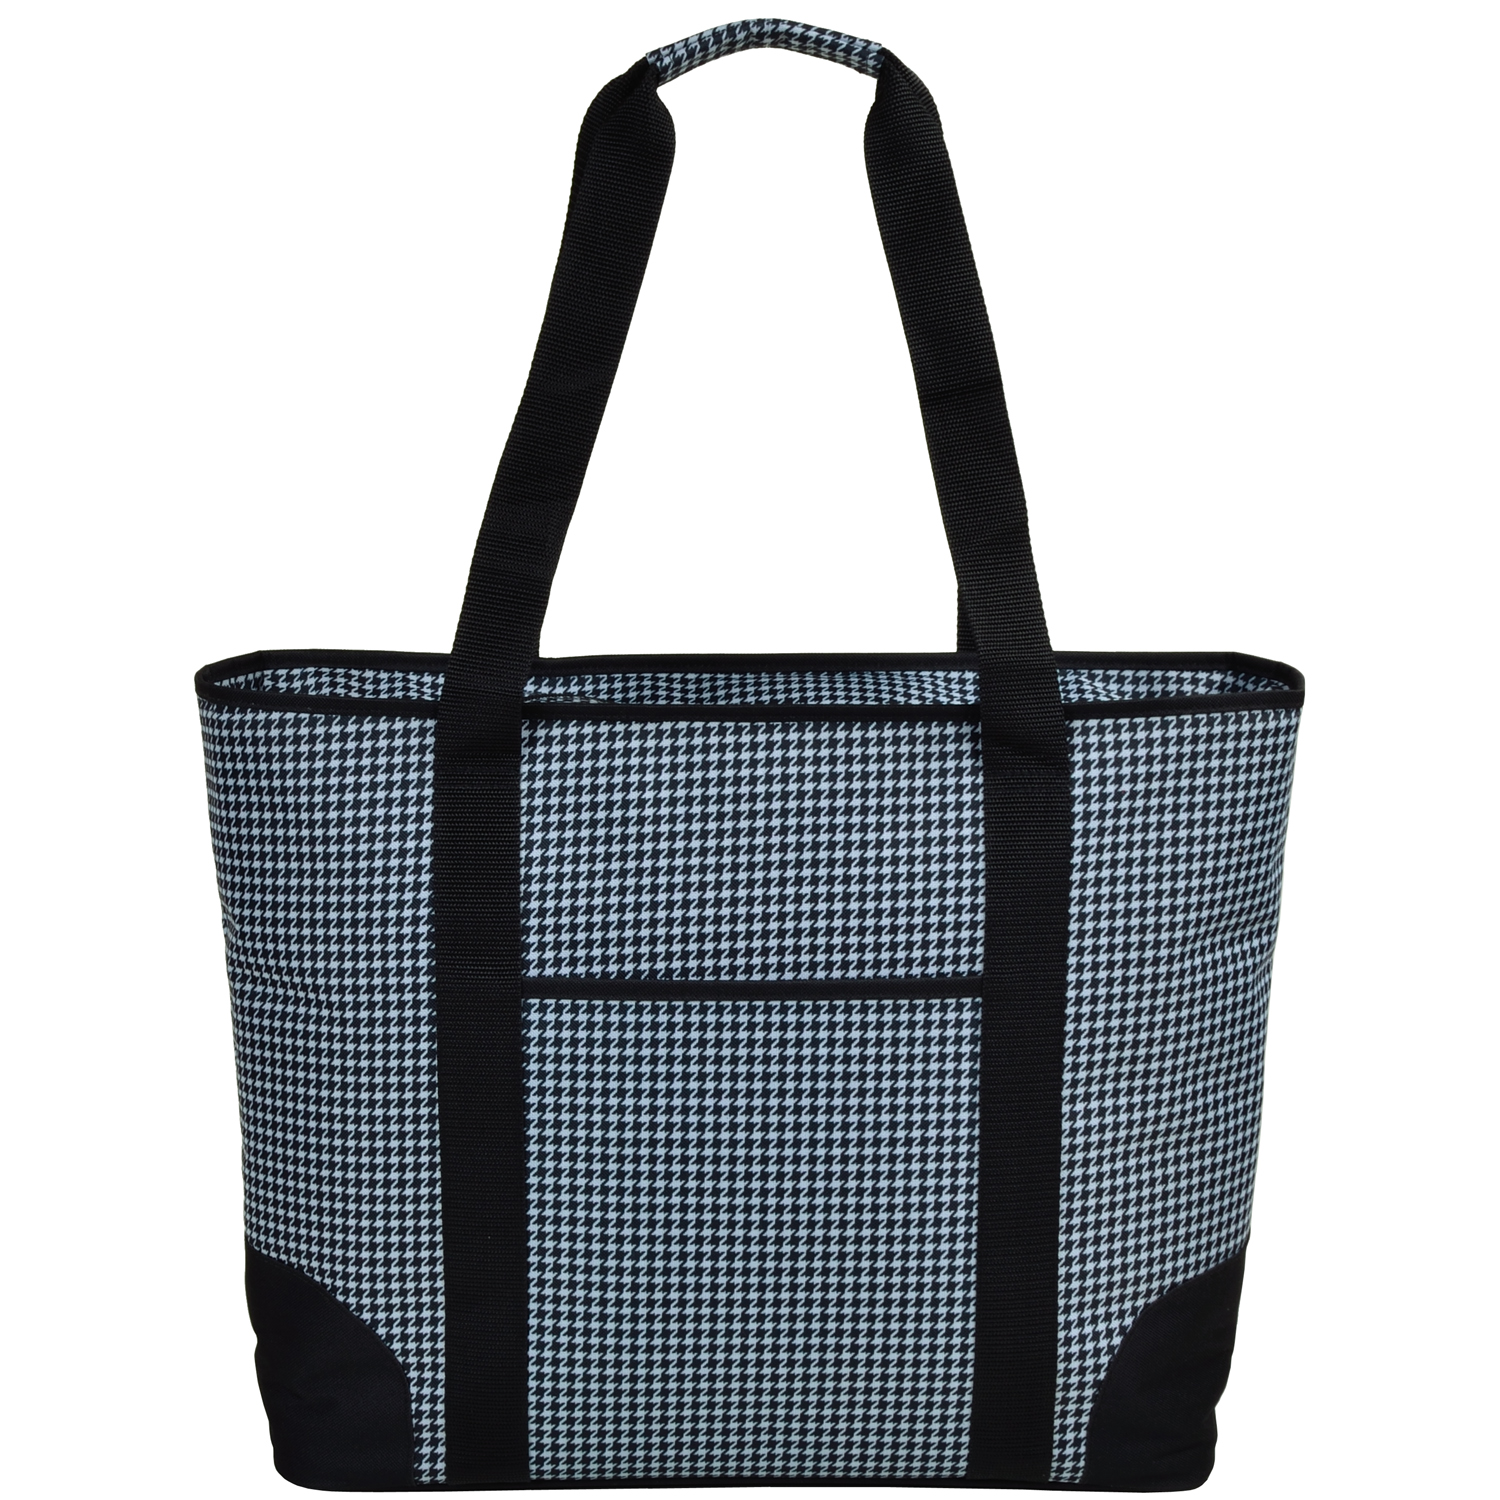 Picnic At Ascot Extra Large Insulated Cooler Bag 30 Can Tote Houndstooth